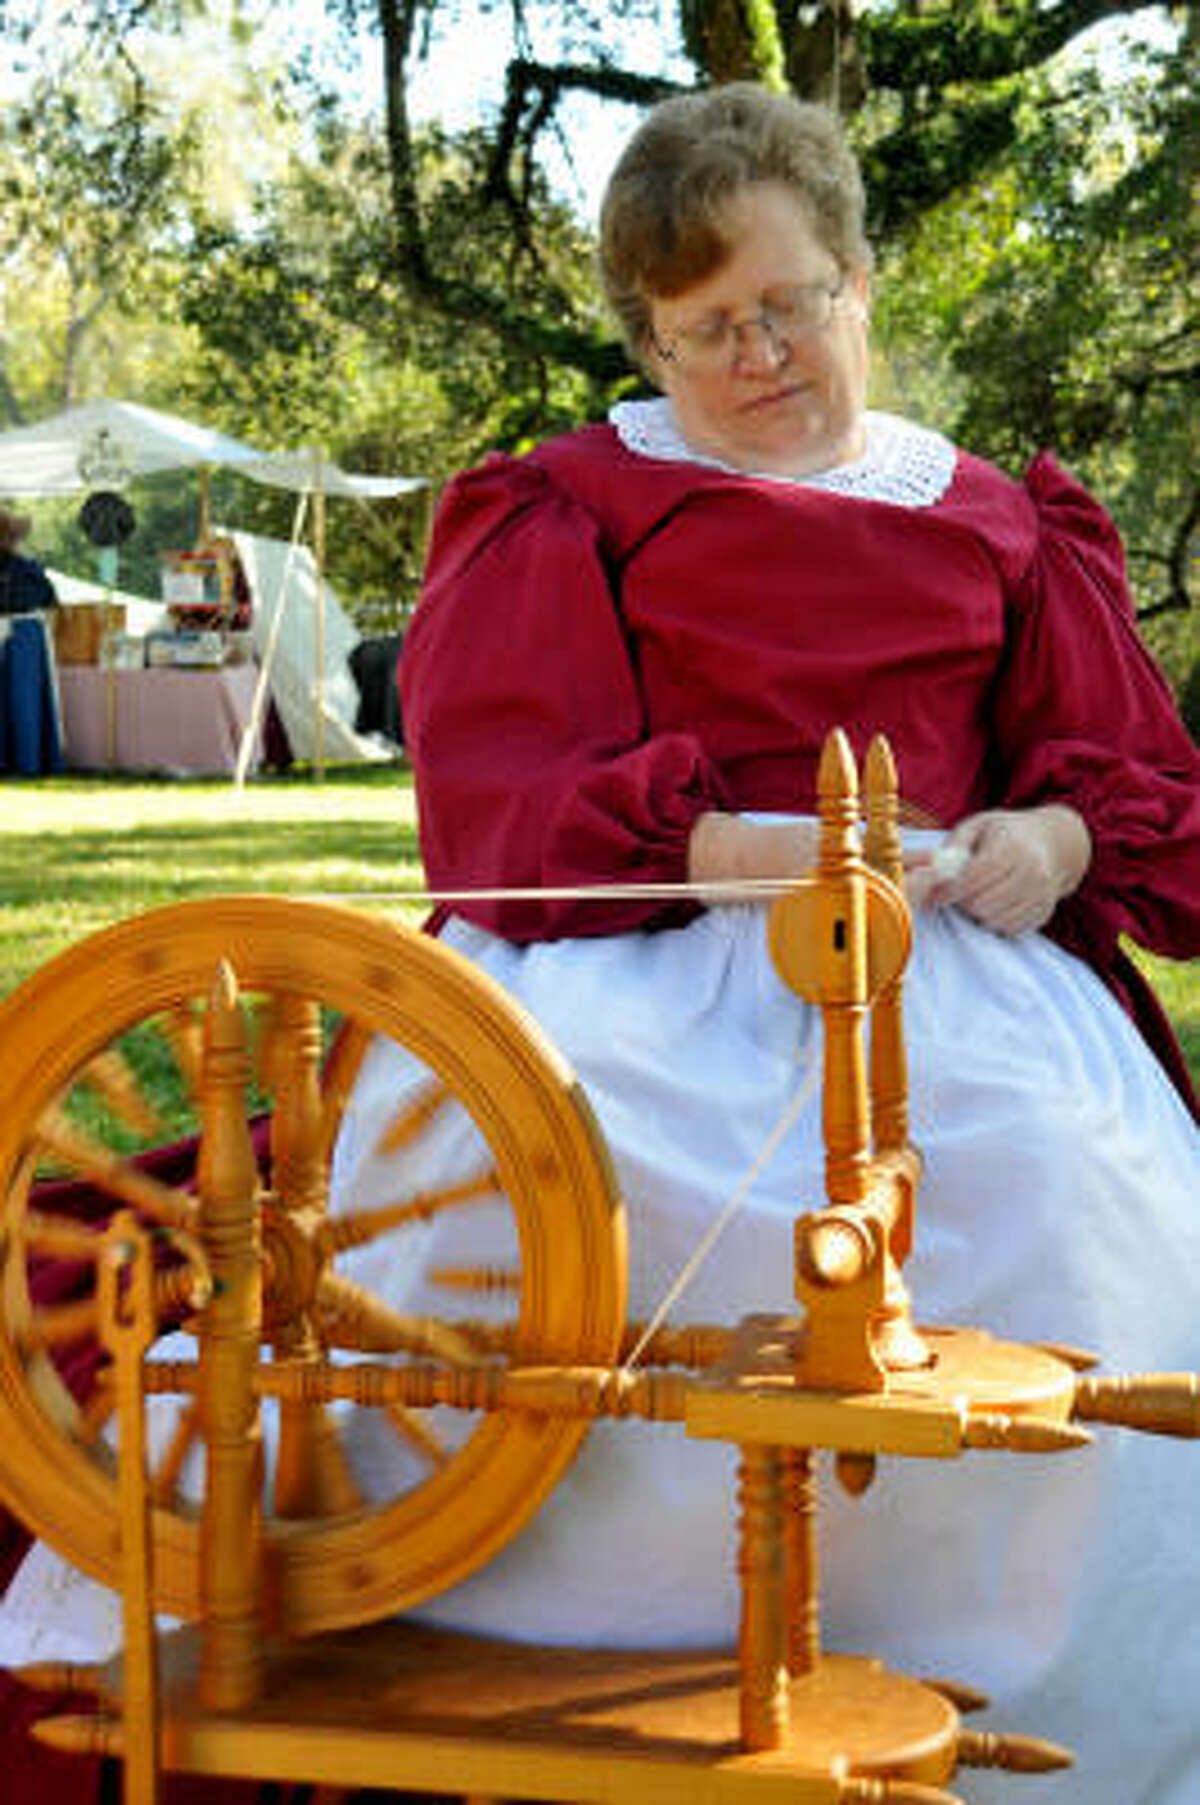 CIVIL WAR WEEKEND: Peggy Barnette uses an old-fashioned spinning wheel during the Civil War Weekend held at Liendo Plantation. Barnette was taught how to spin by her best friend. The fleece has to be washed and carded before spun into thread or yarn. A man made this wheel for his wife in 1970 and when she passed away, he sold to Peggy.